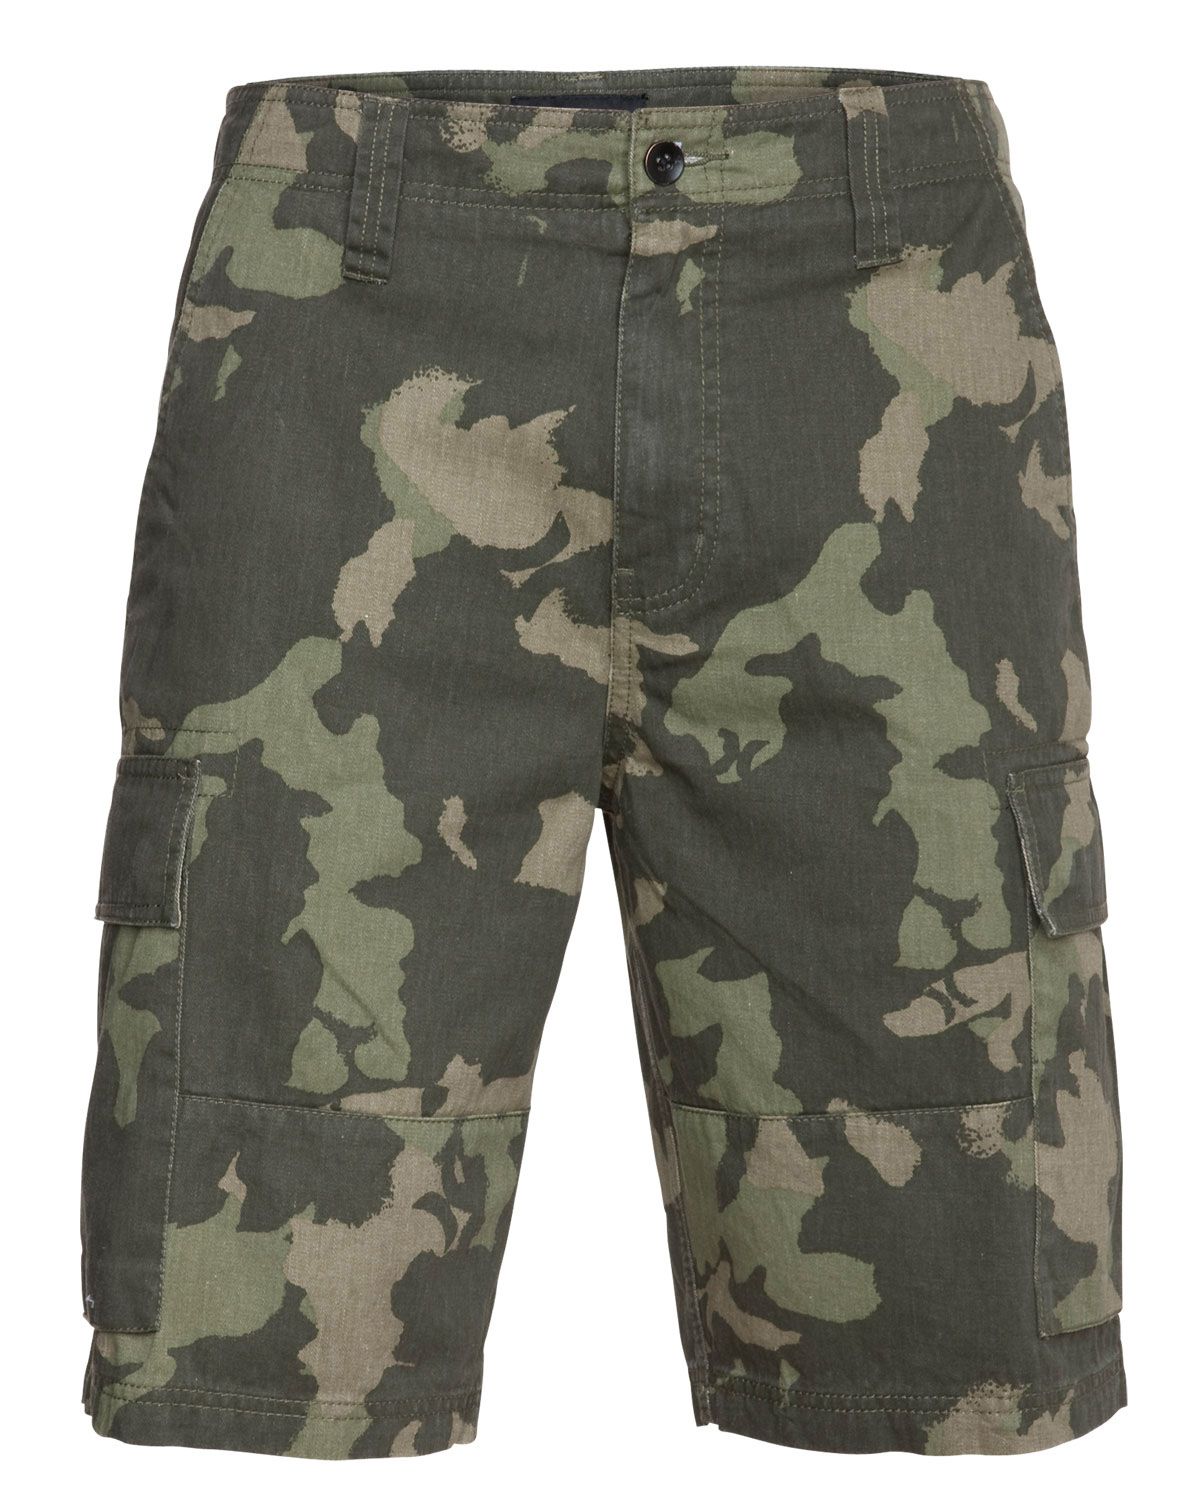 Surf Key Features of the Hurley Commander Shorts: Cargo fit 100 cotton Cargo pockets with hidden snaps Military details Woven label branding and self applique icon at waistband - $31.95